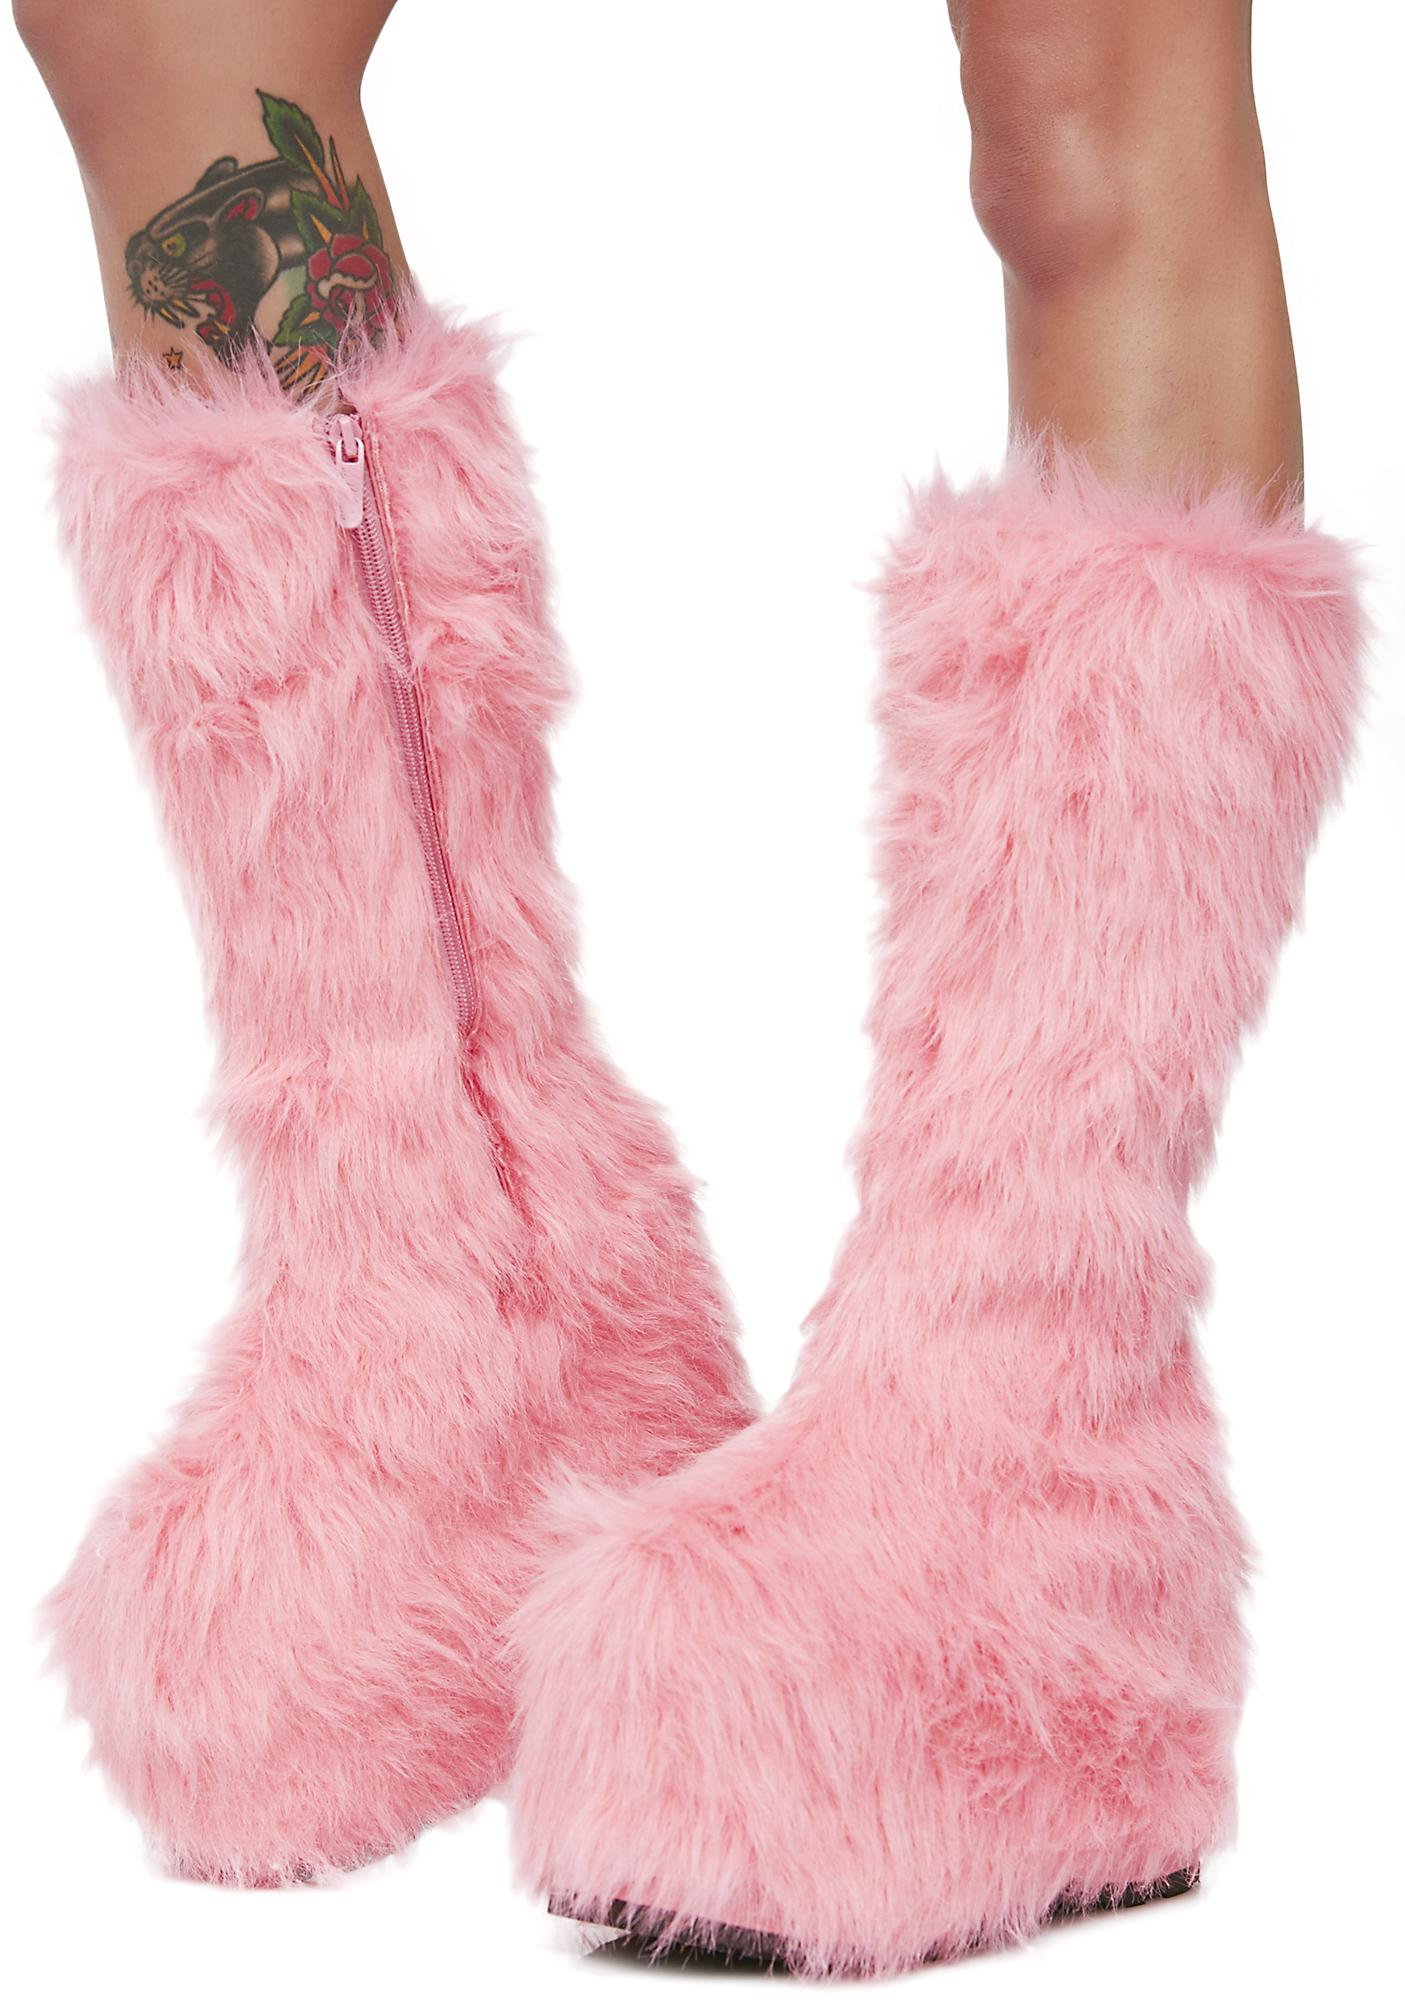 Candy Party Monster Fuzzy Platform Boots